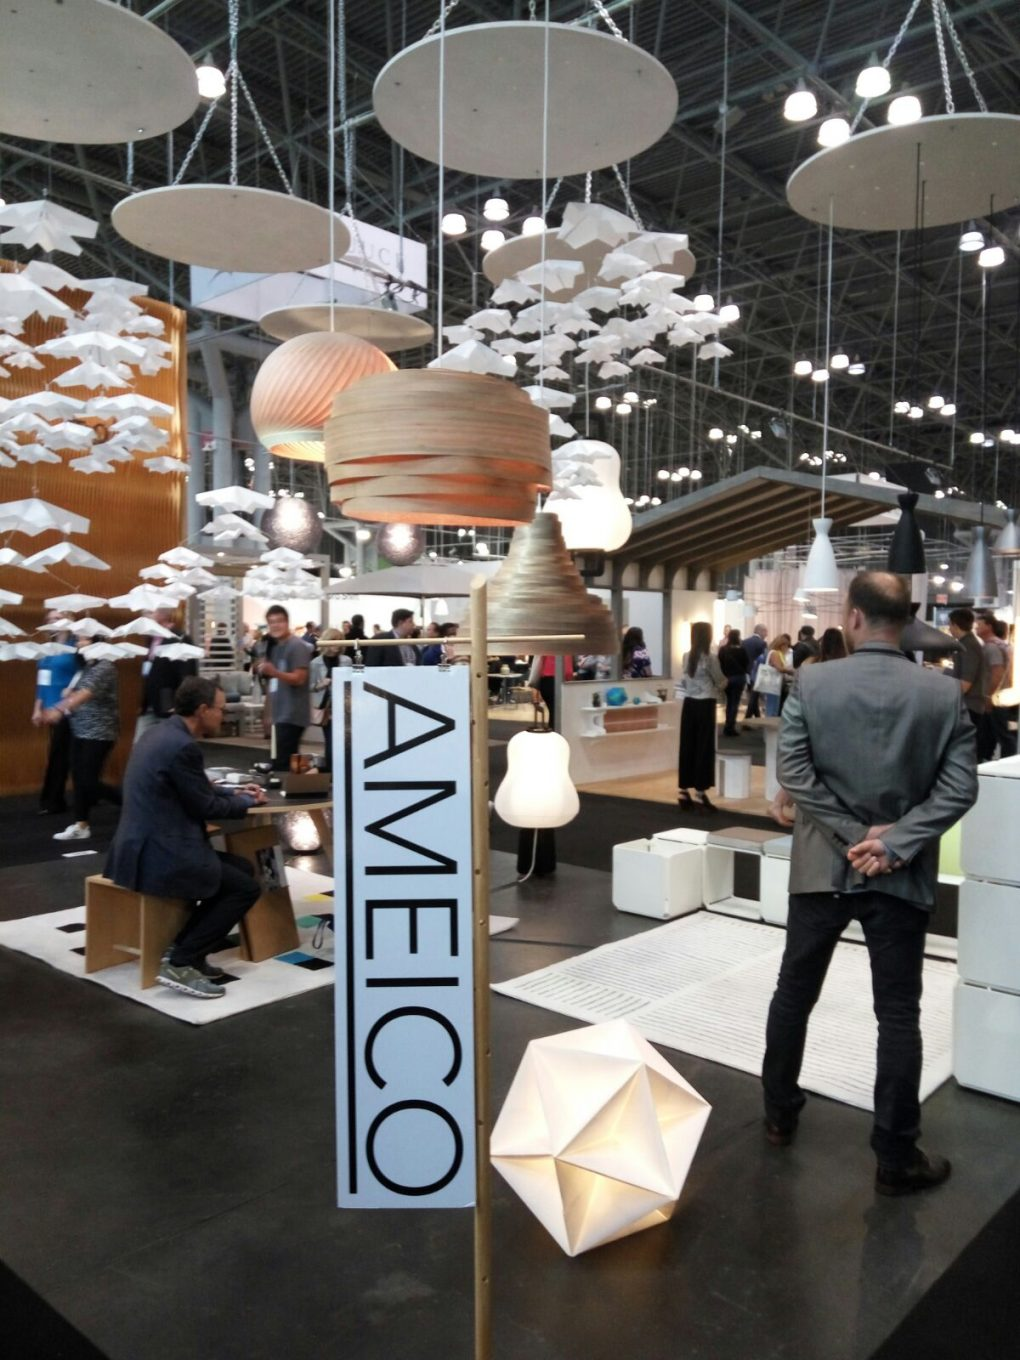 Trend Alert Discover the Best Lighting Brands at ICFF 2017 4 lighting brands Trend Alert: Discover the Best Lighting Brands at ICFF 2017 Trend Alert Discover the Best Lighting Brands at ICFF 2017 6